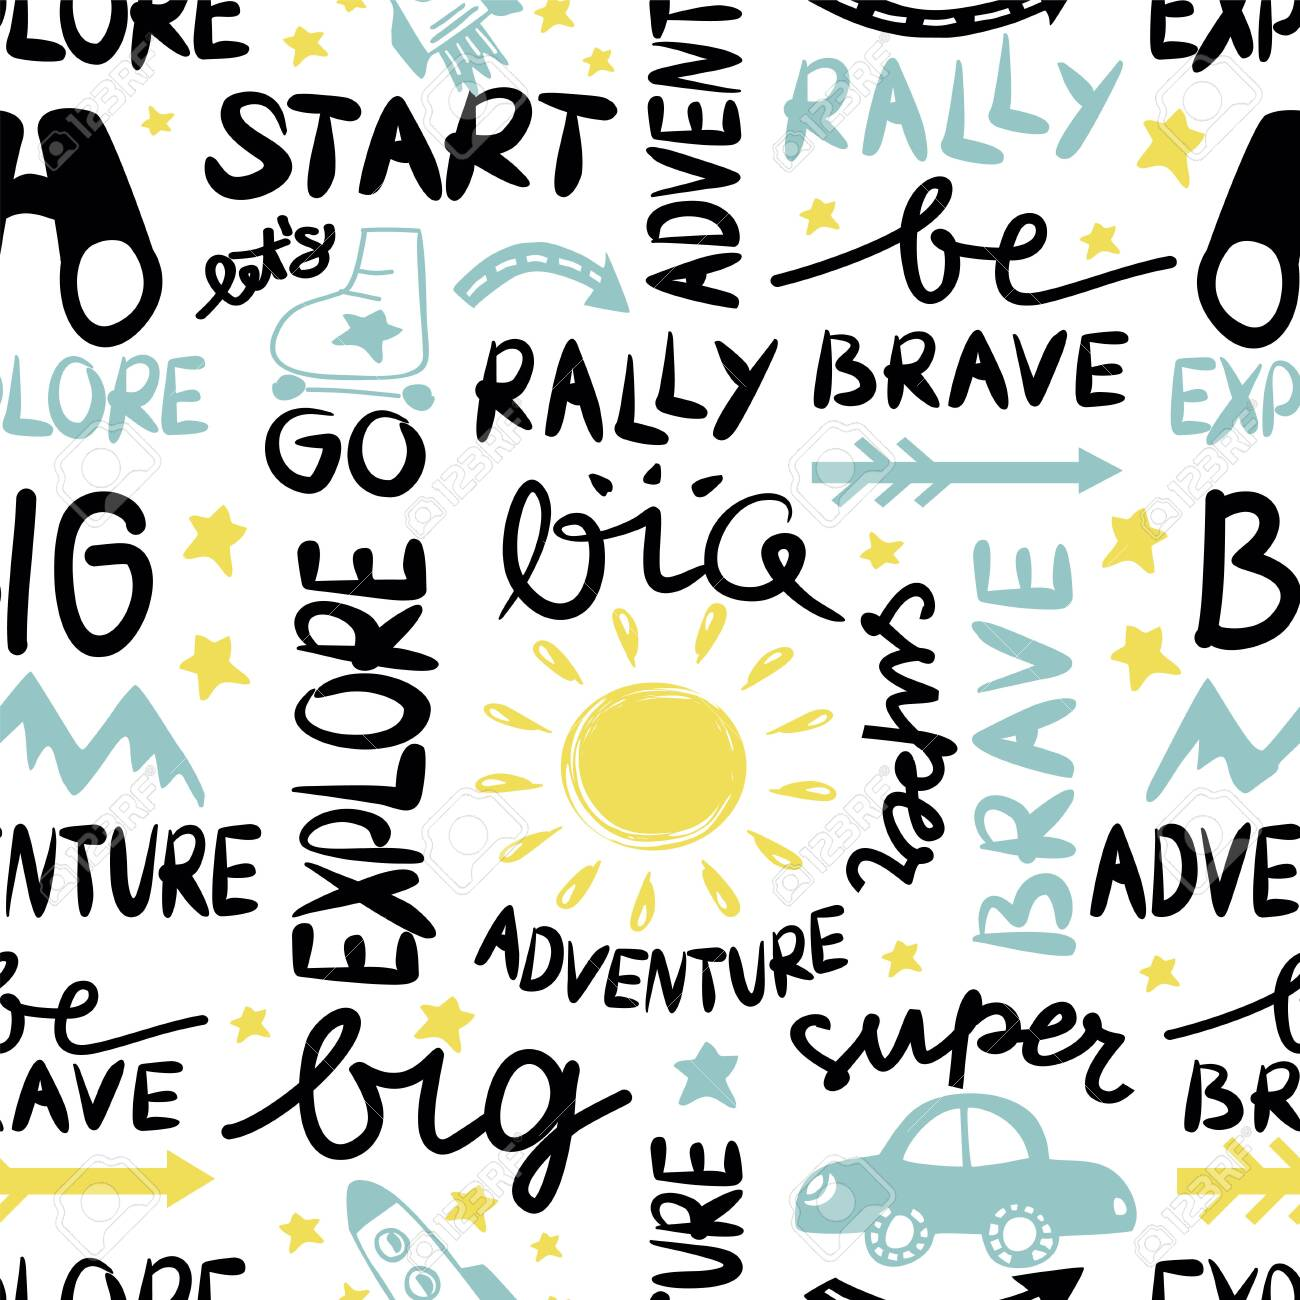 Seamless kids pattern with hand lettering words Explore, Big adventure, Super rally, Be brave. - 149551660